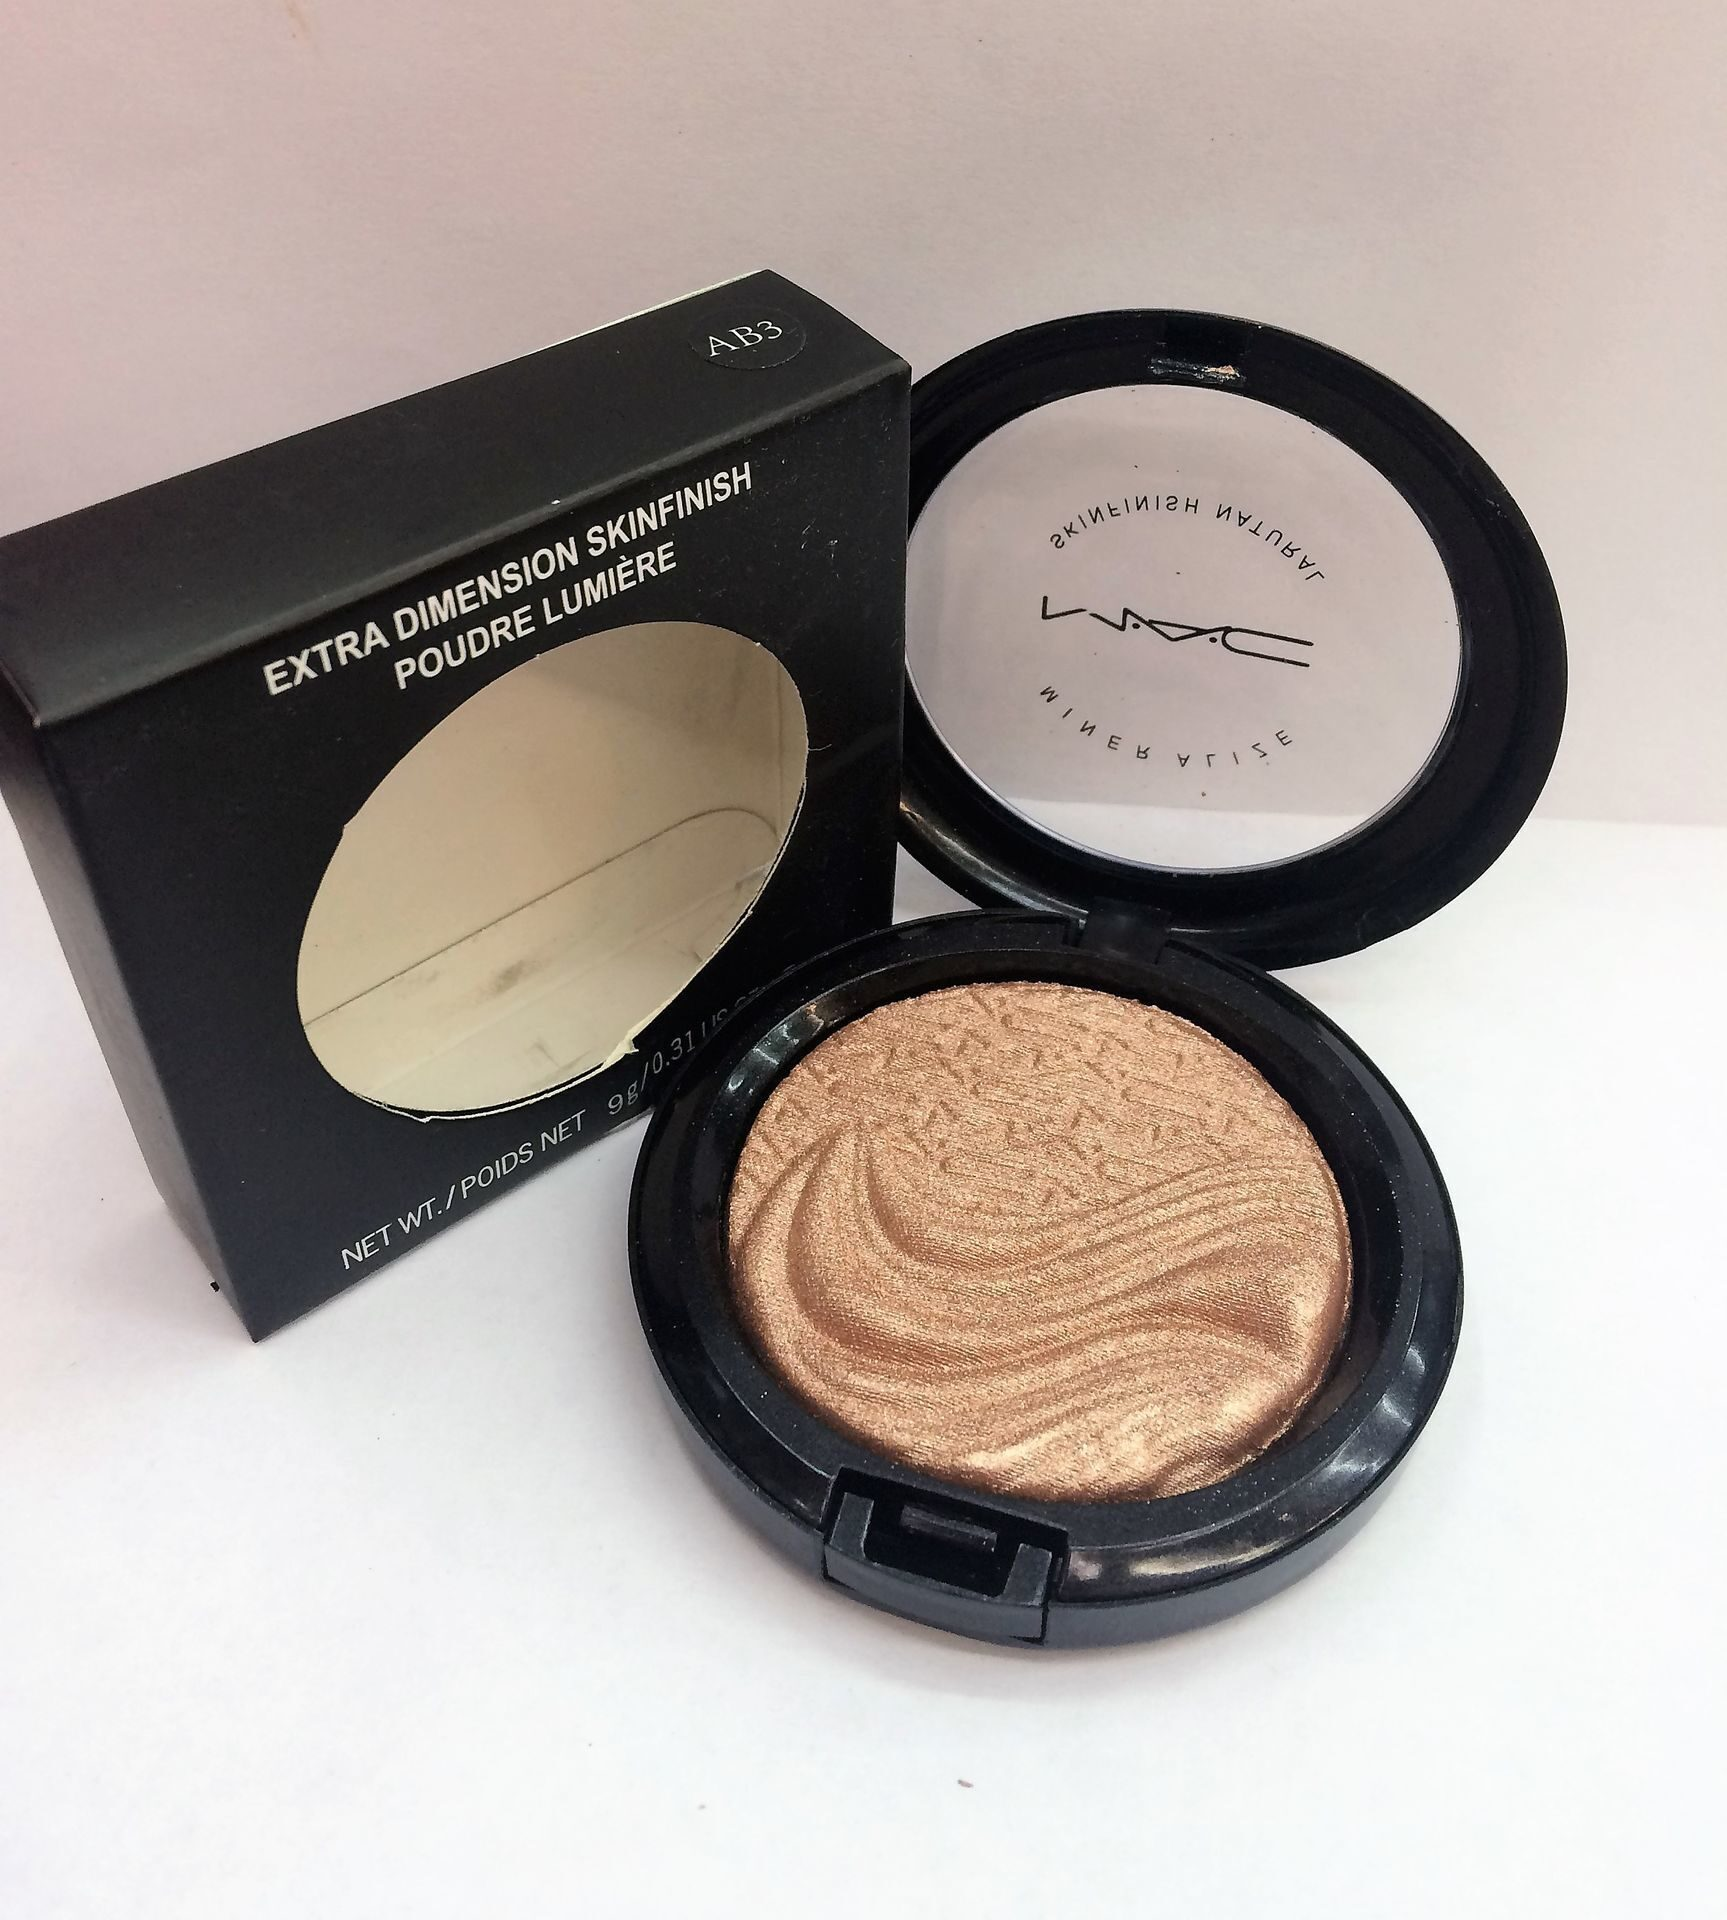 MAC AB3 extra dimension skinfinish poudre lumiere